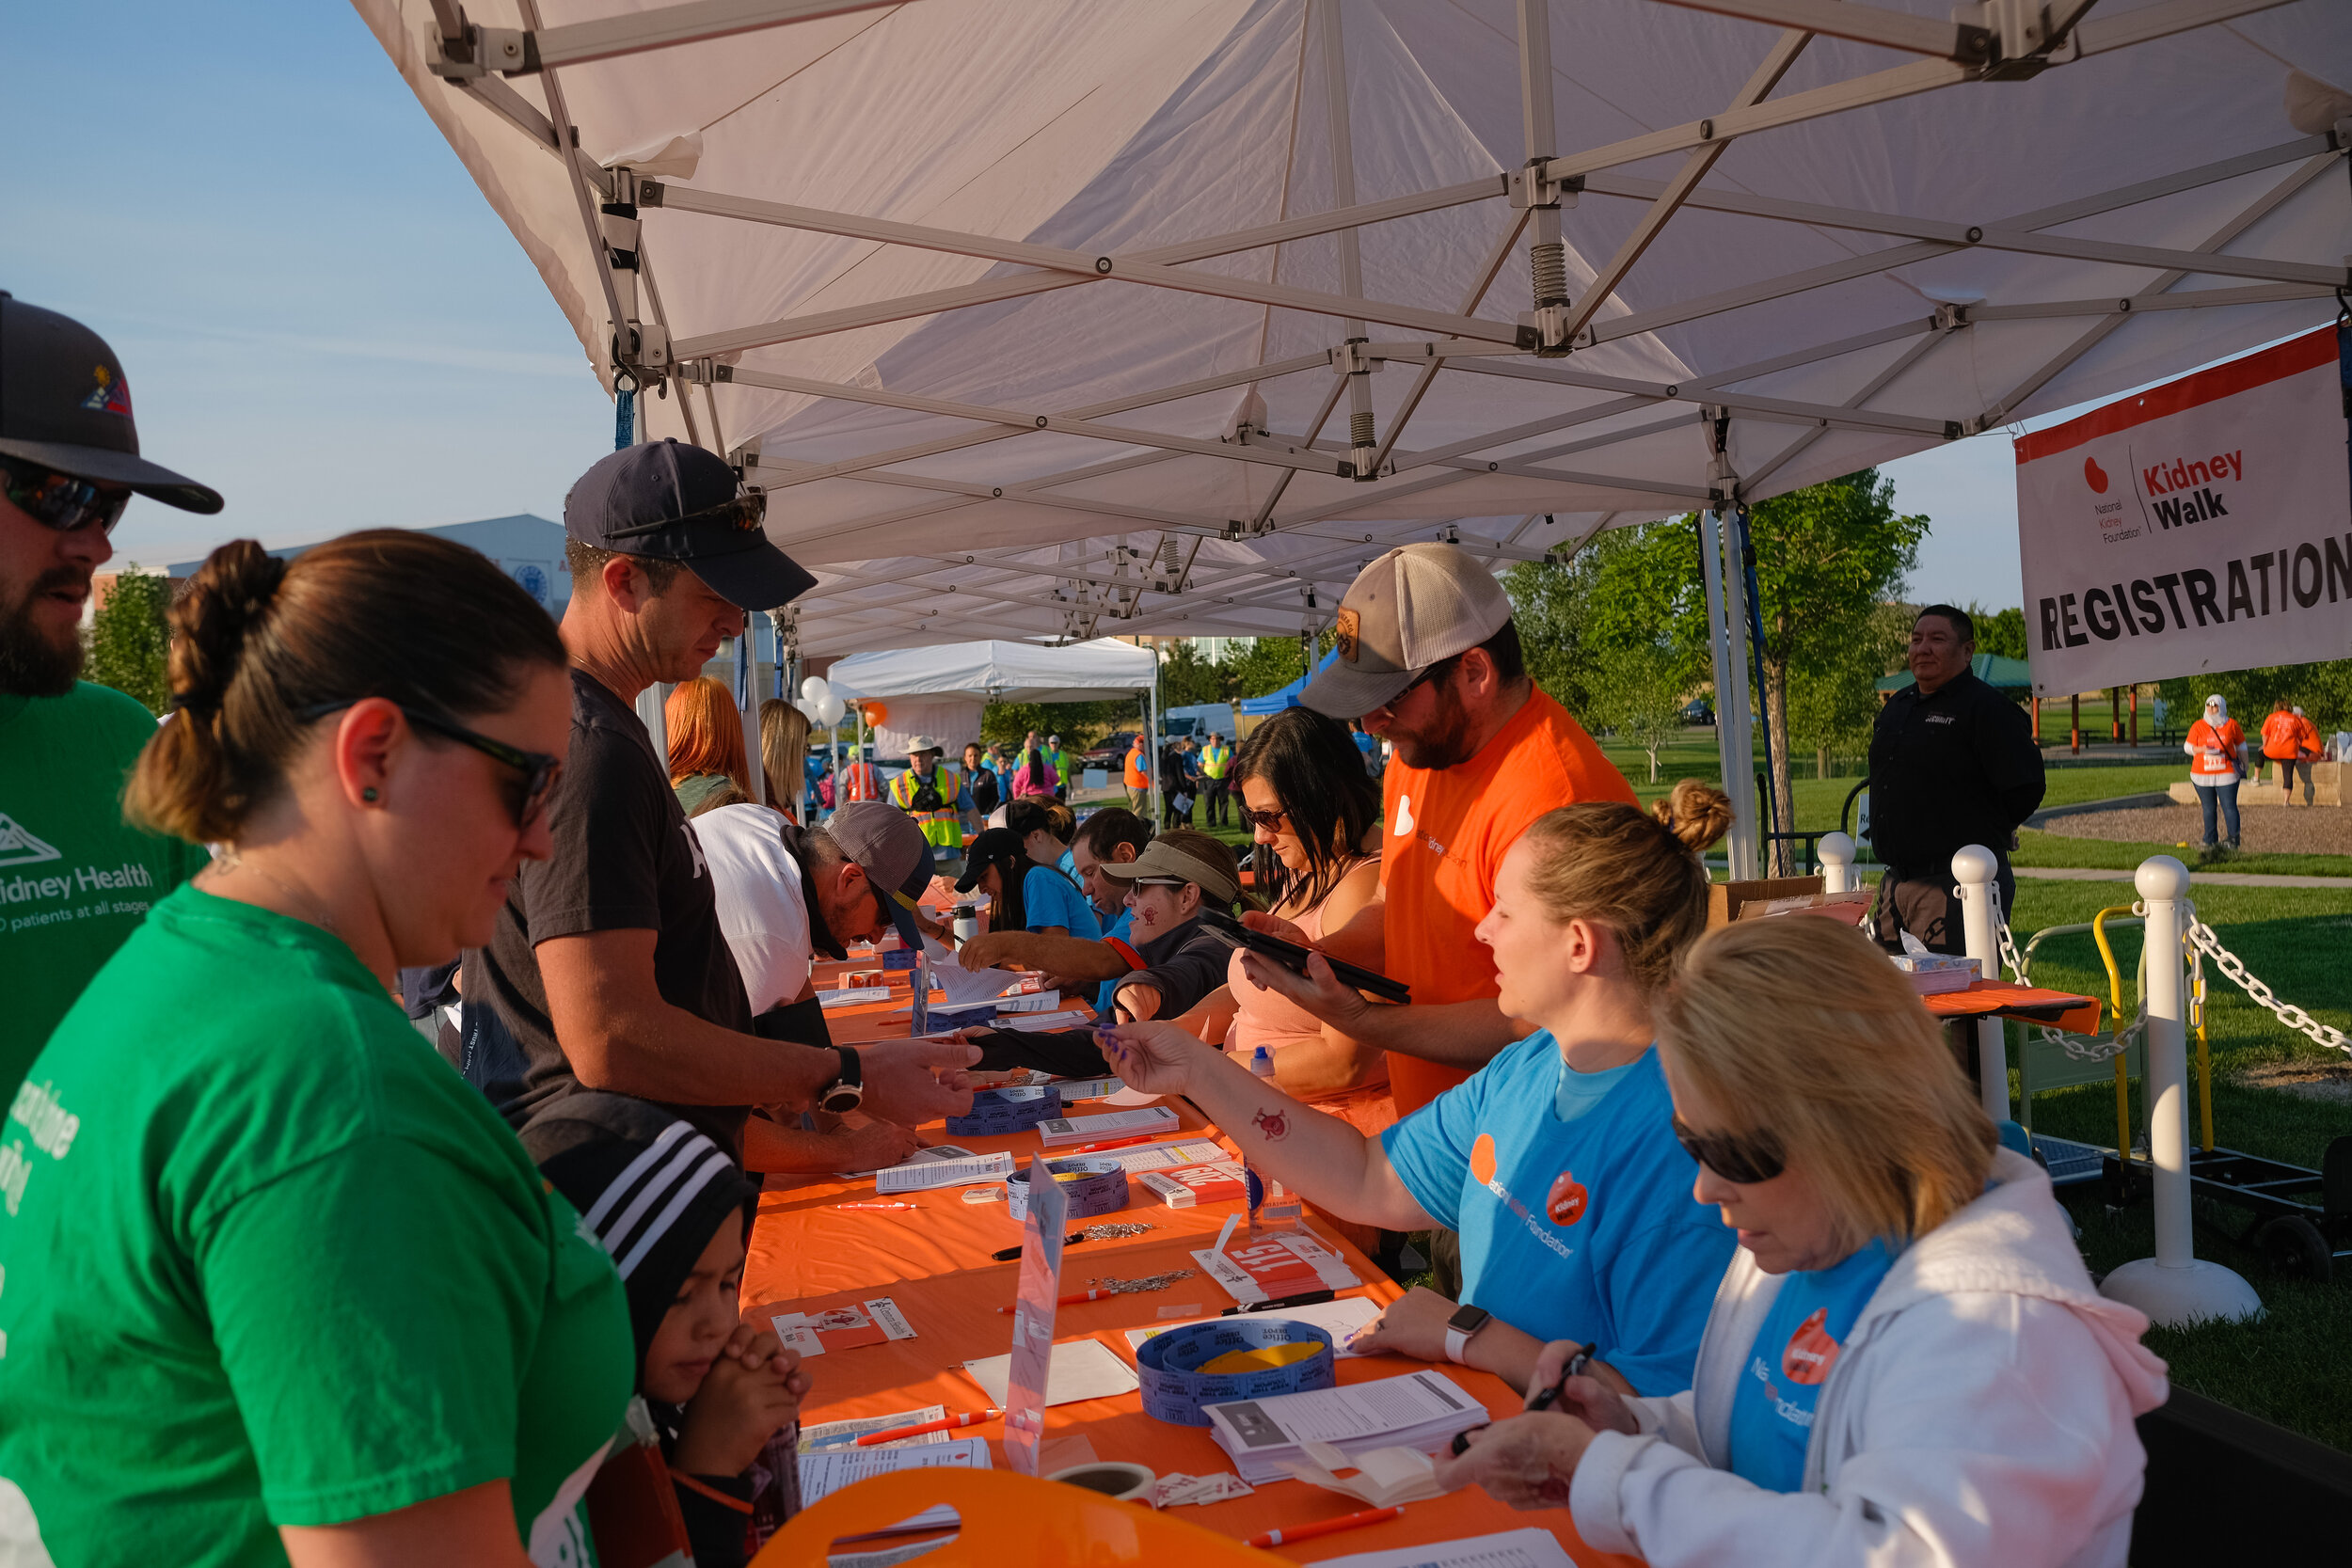 Denver Kidney Walk-9.jpg